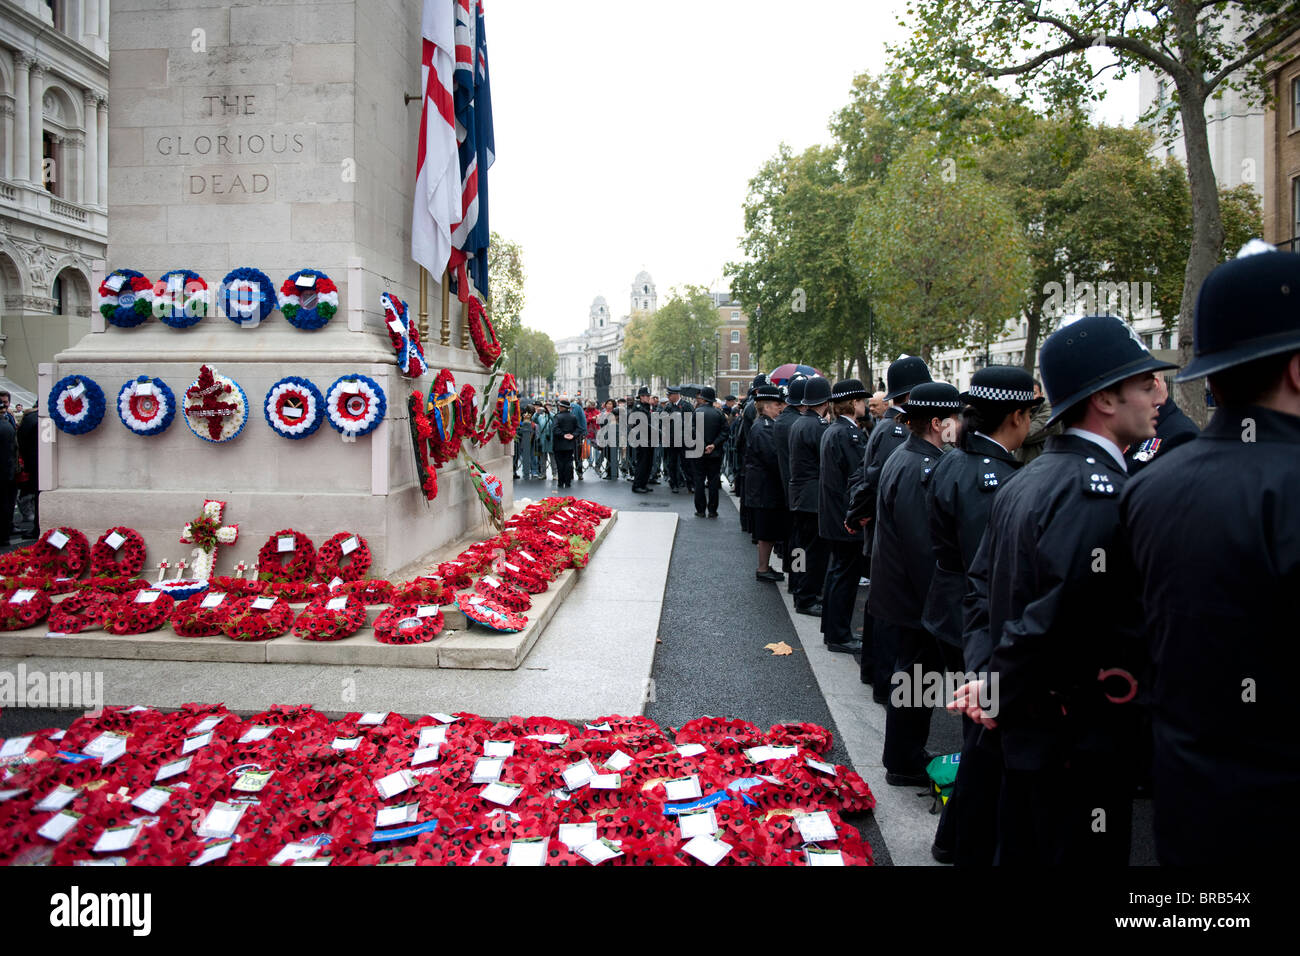 Poppies and wreaths spread around The Cenotaph in Whitehall, London, for the annual Remembrance Day Parade. - Stock Image